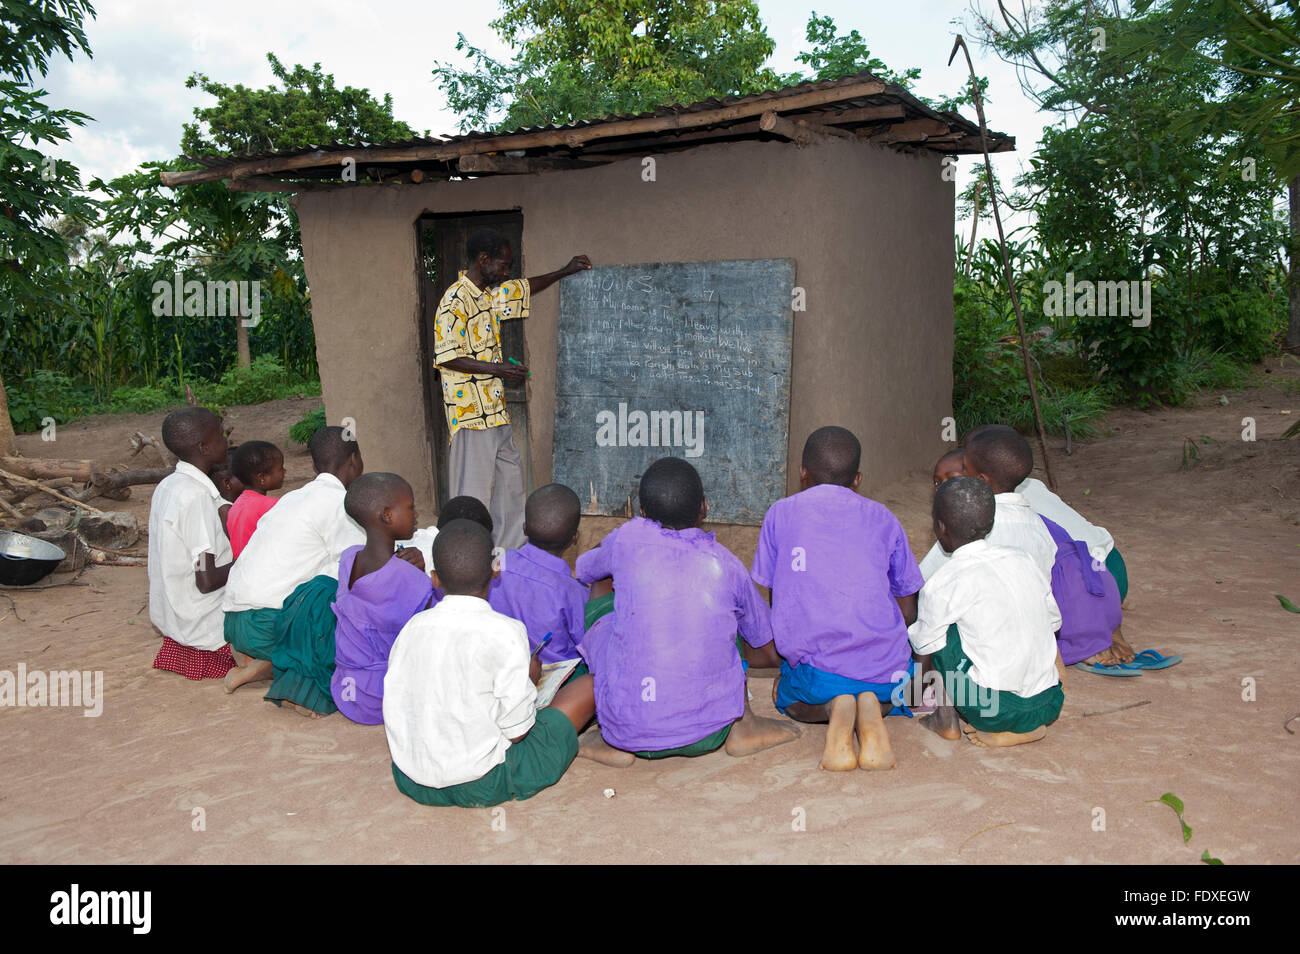 Children learning from a teacher at an outside classroom, Uganda. - Stock Image